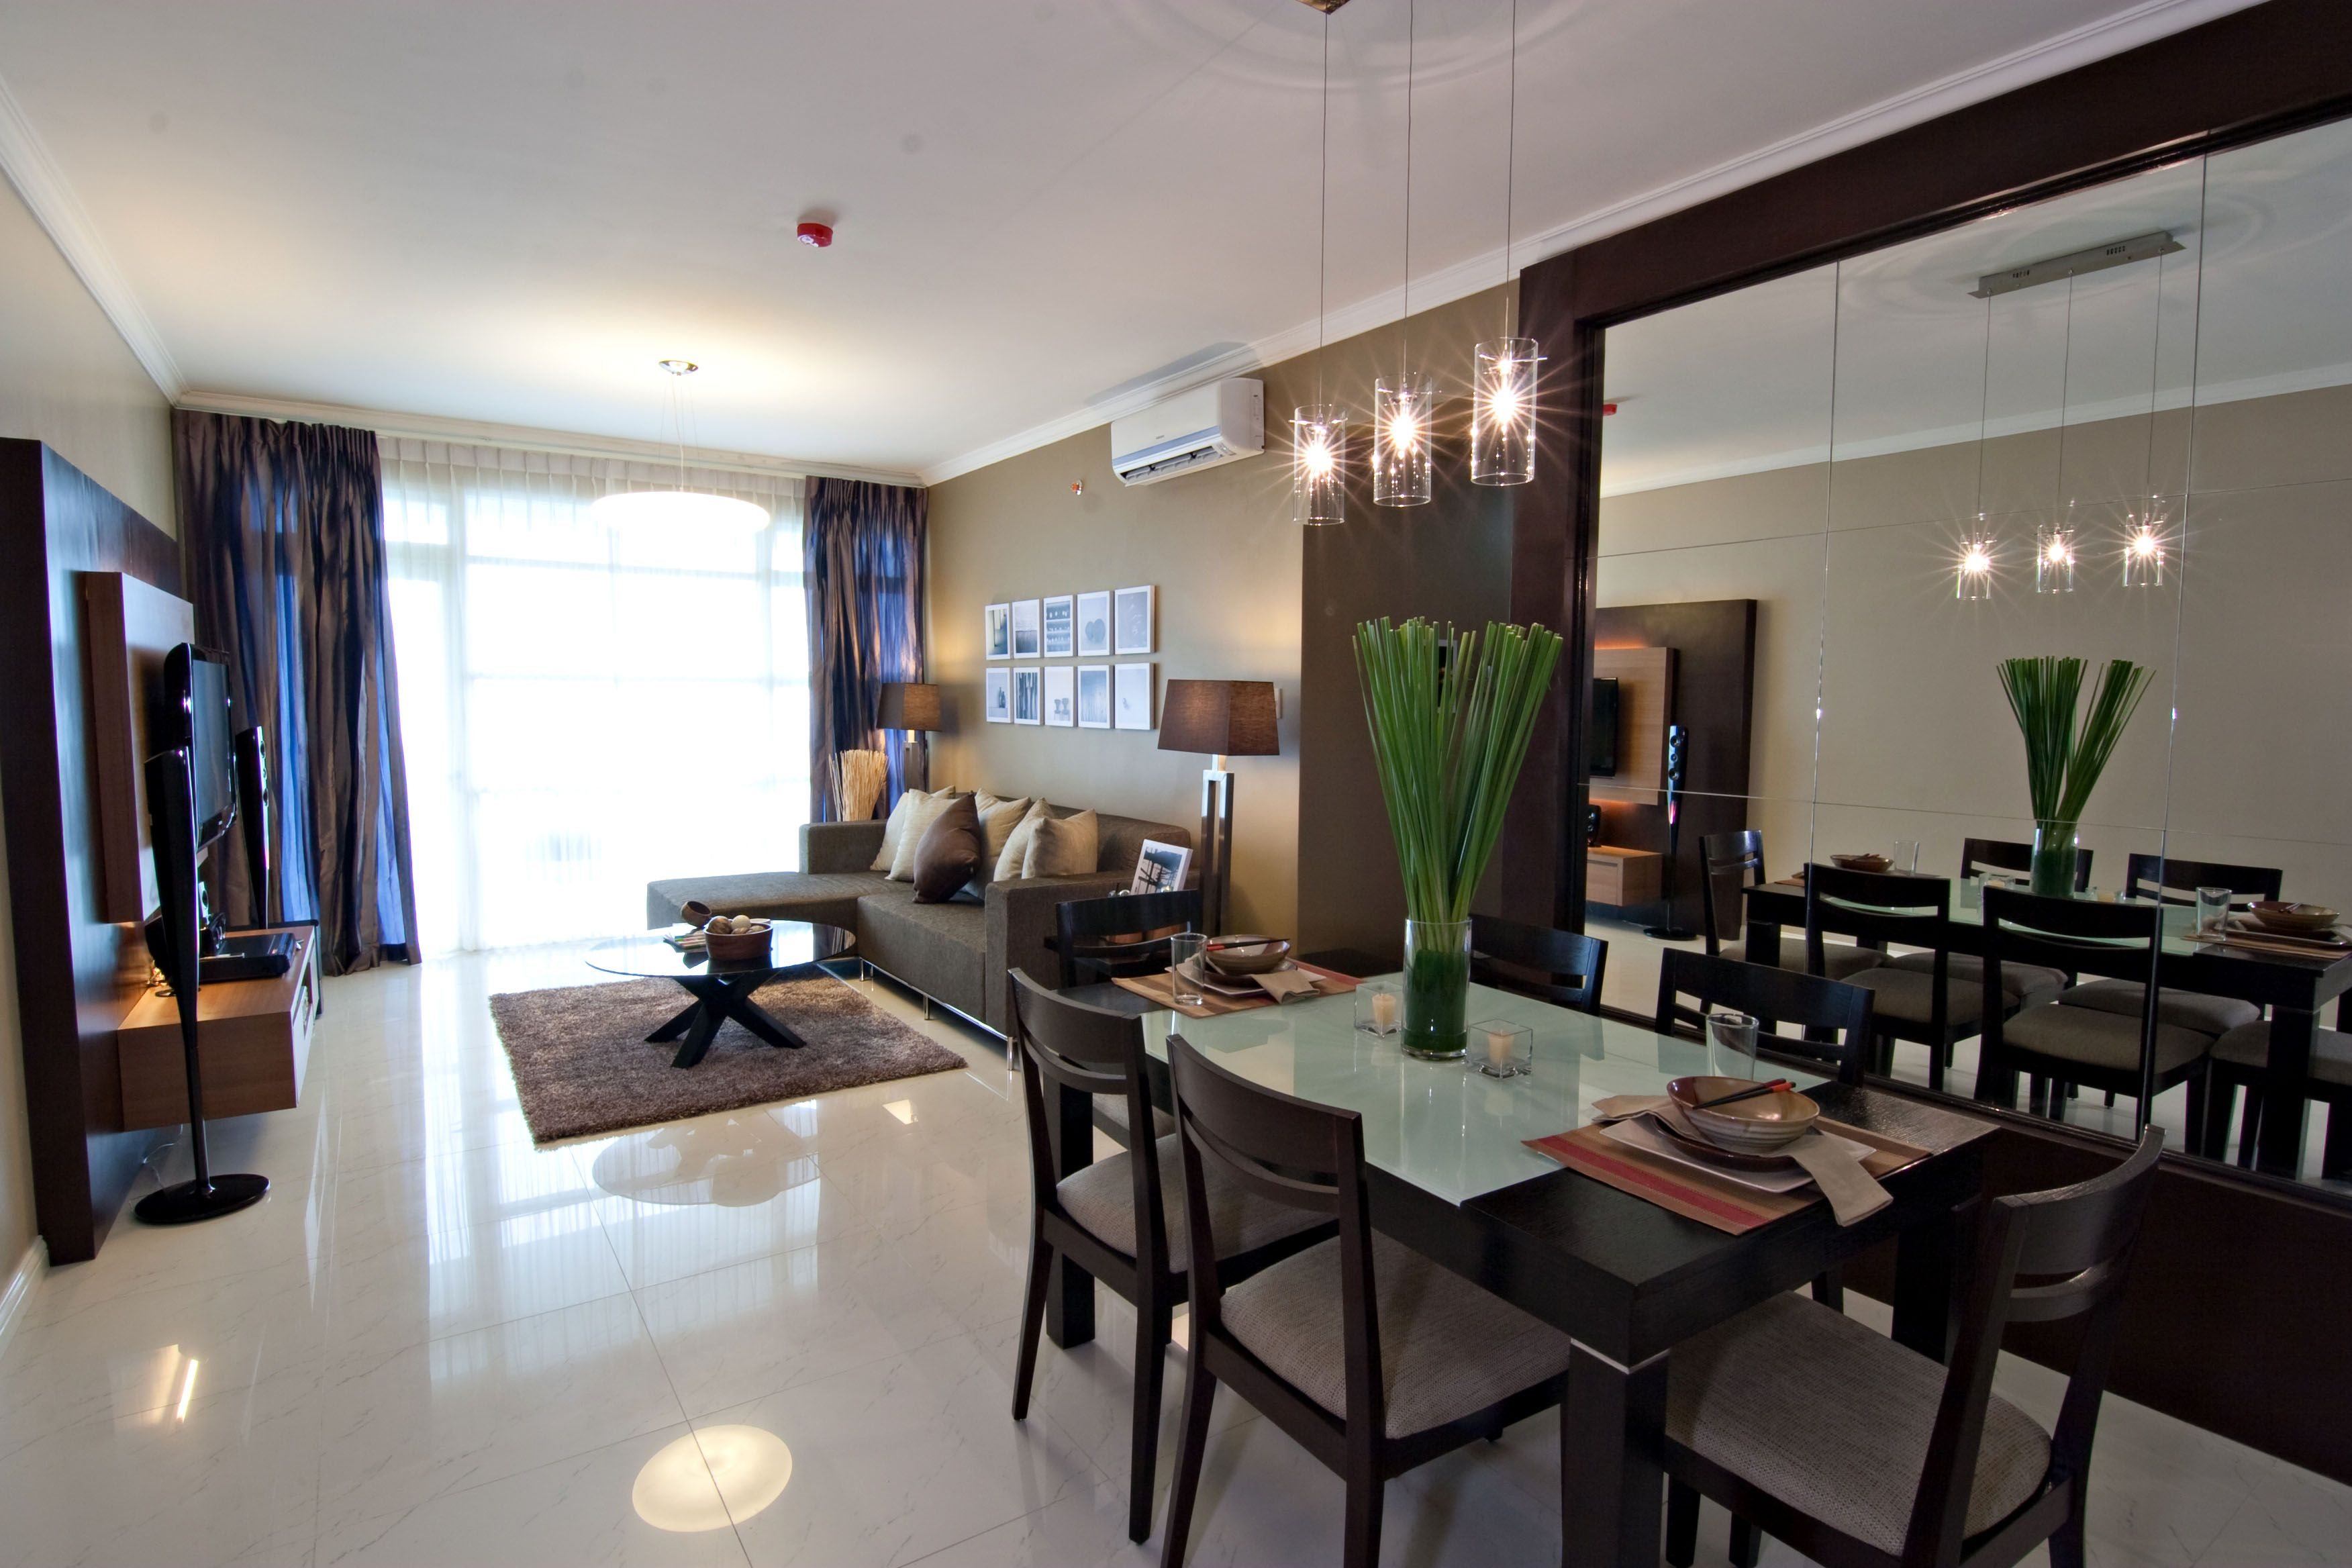 Citylights garden condominium by adrian del monte at for Condo living room design